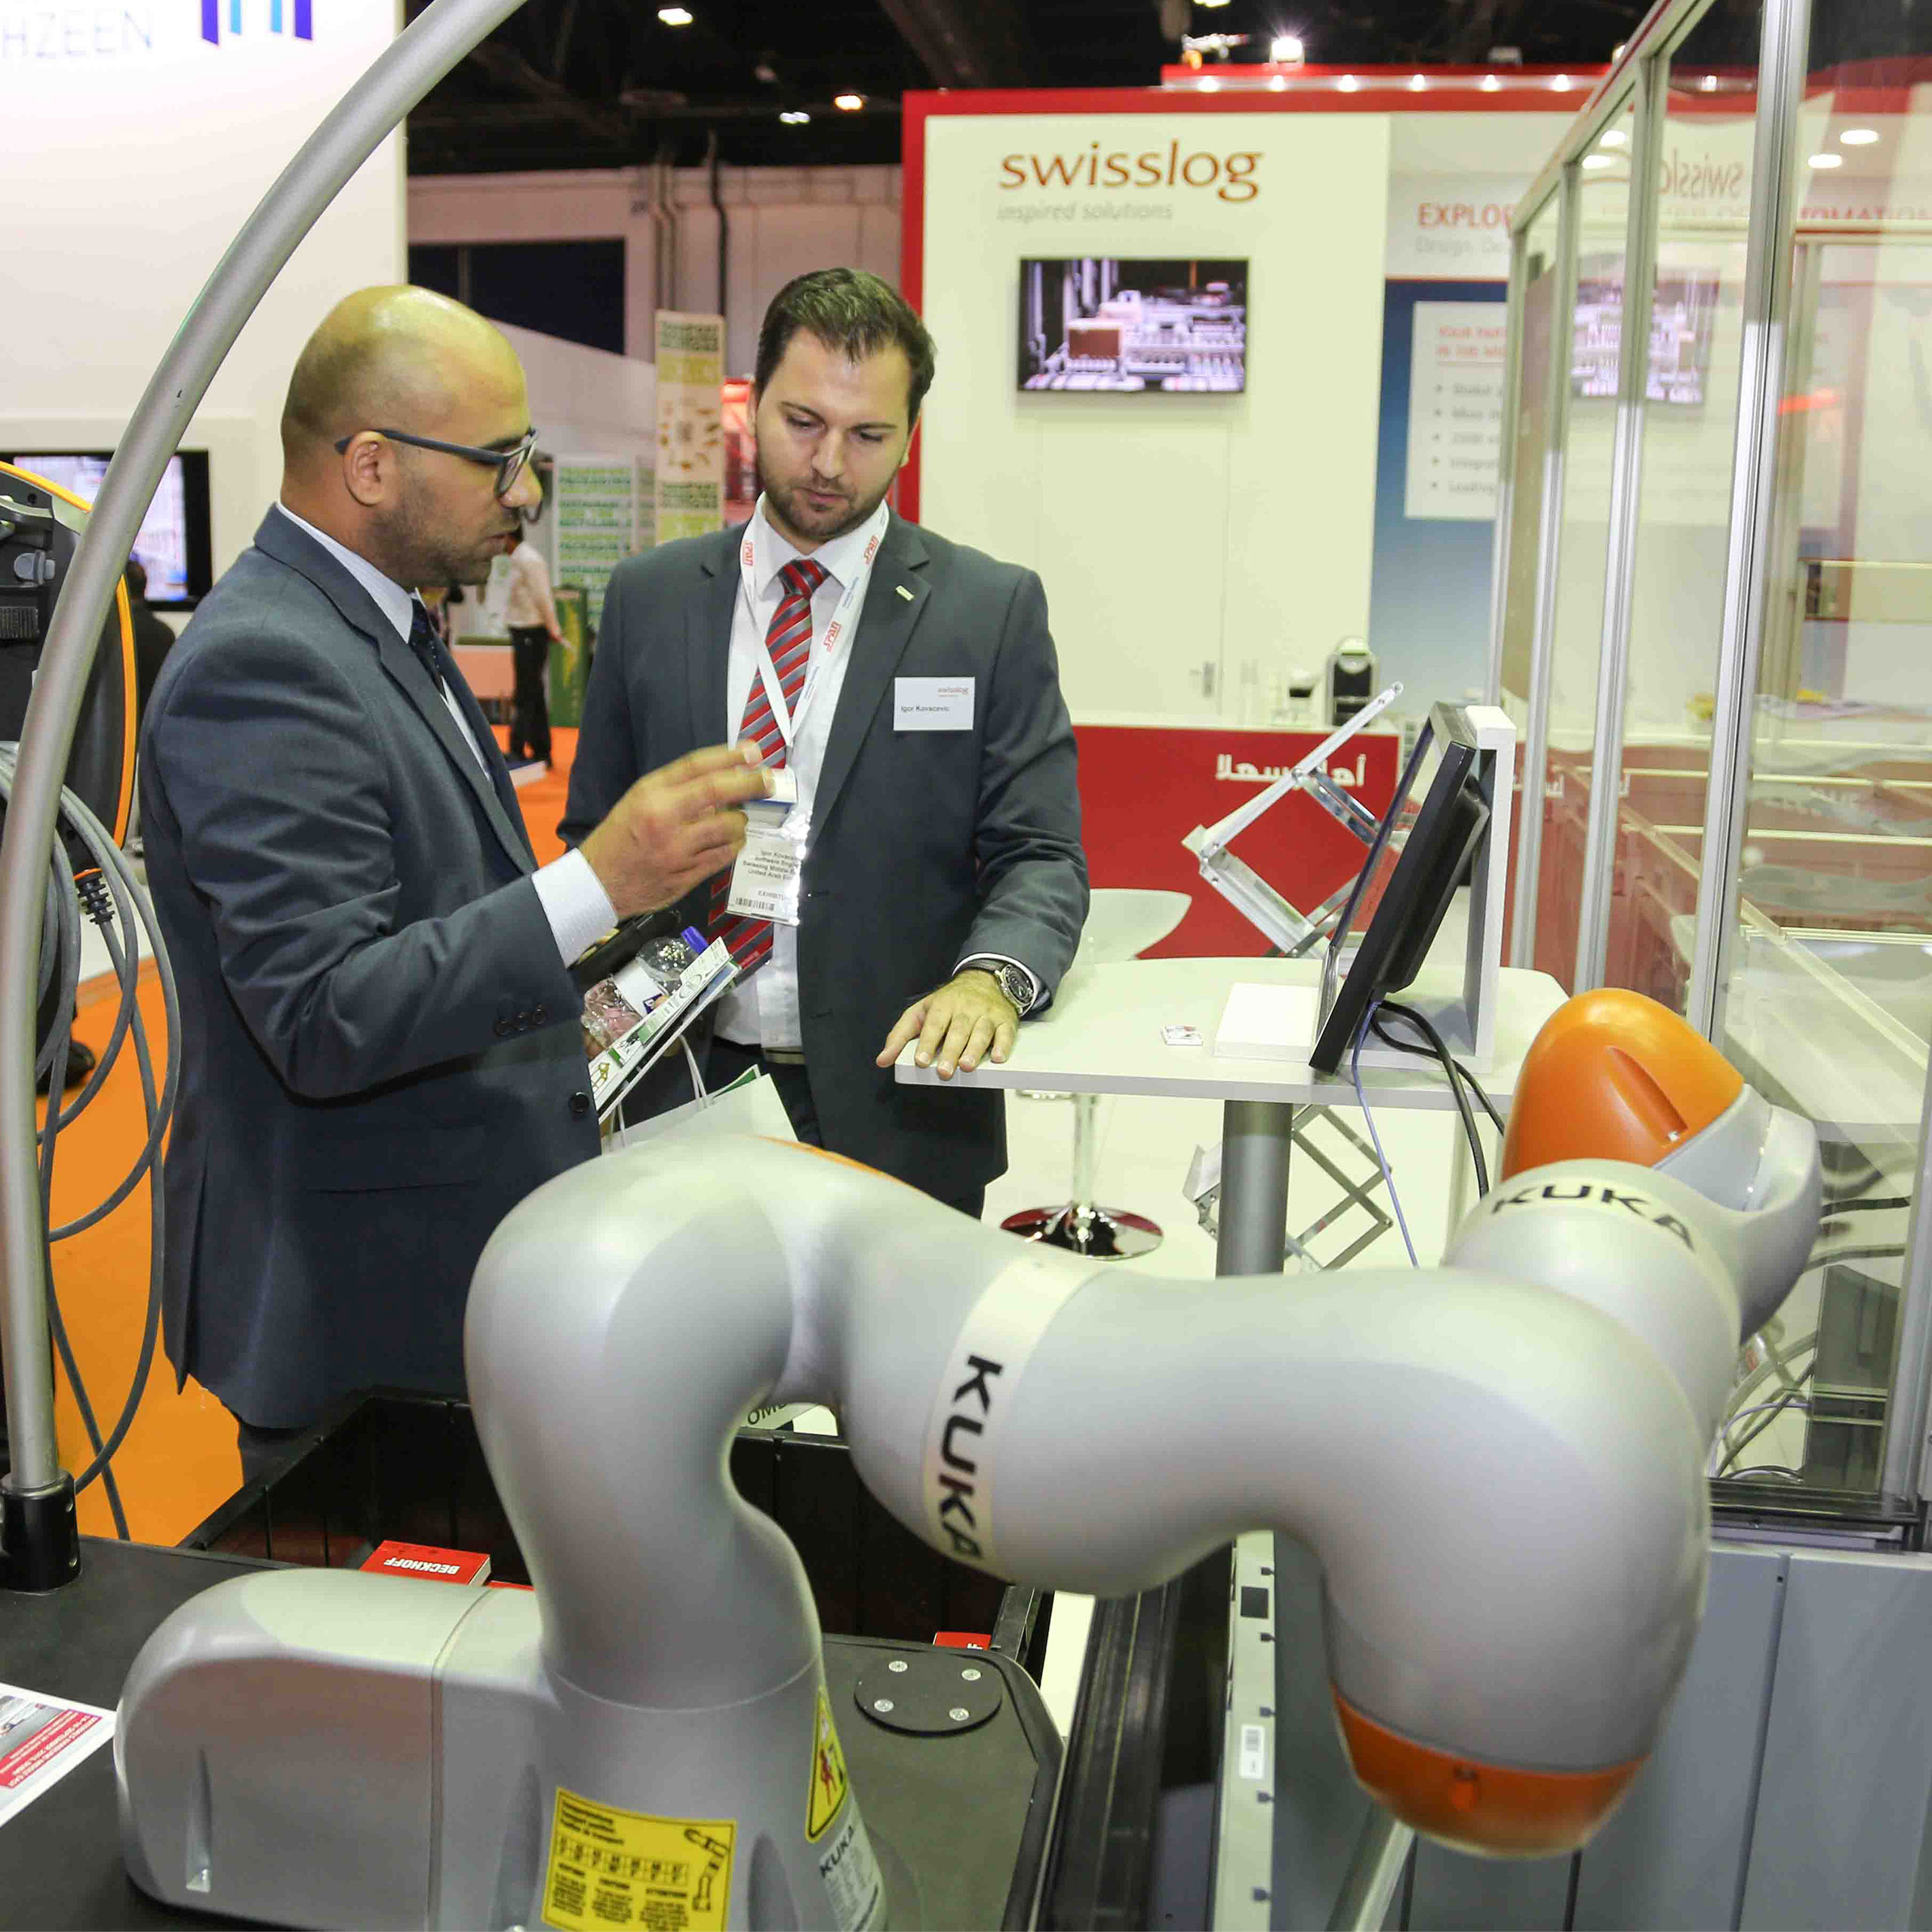 Materials Handling Middle East - Leading players flock to Materials Handling Middle East 2017